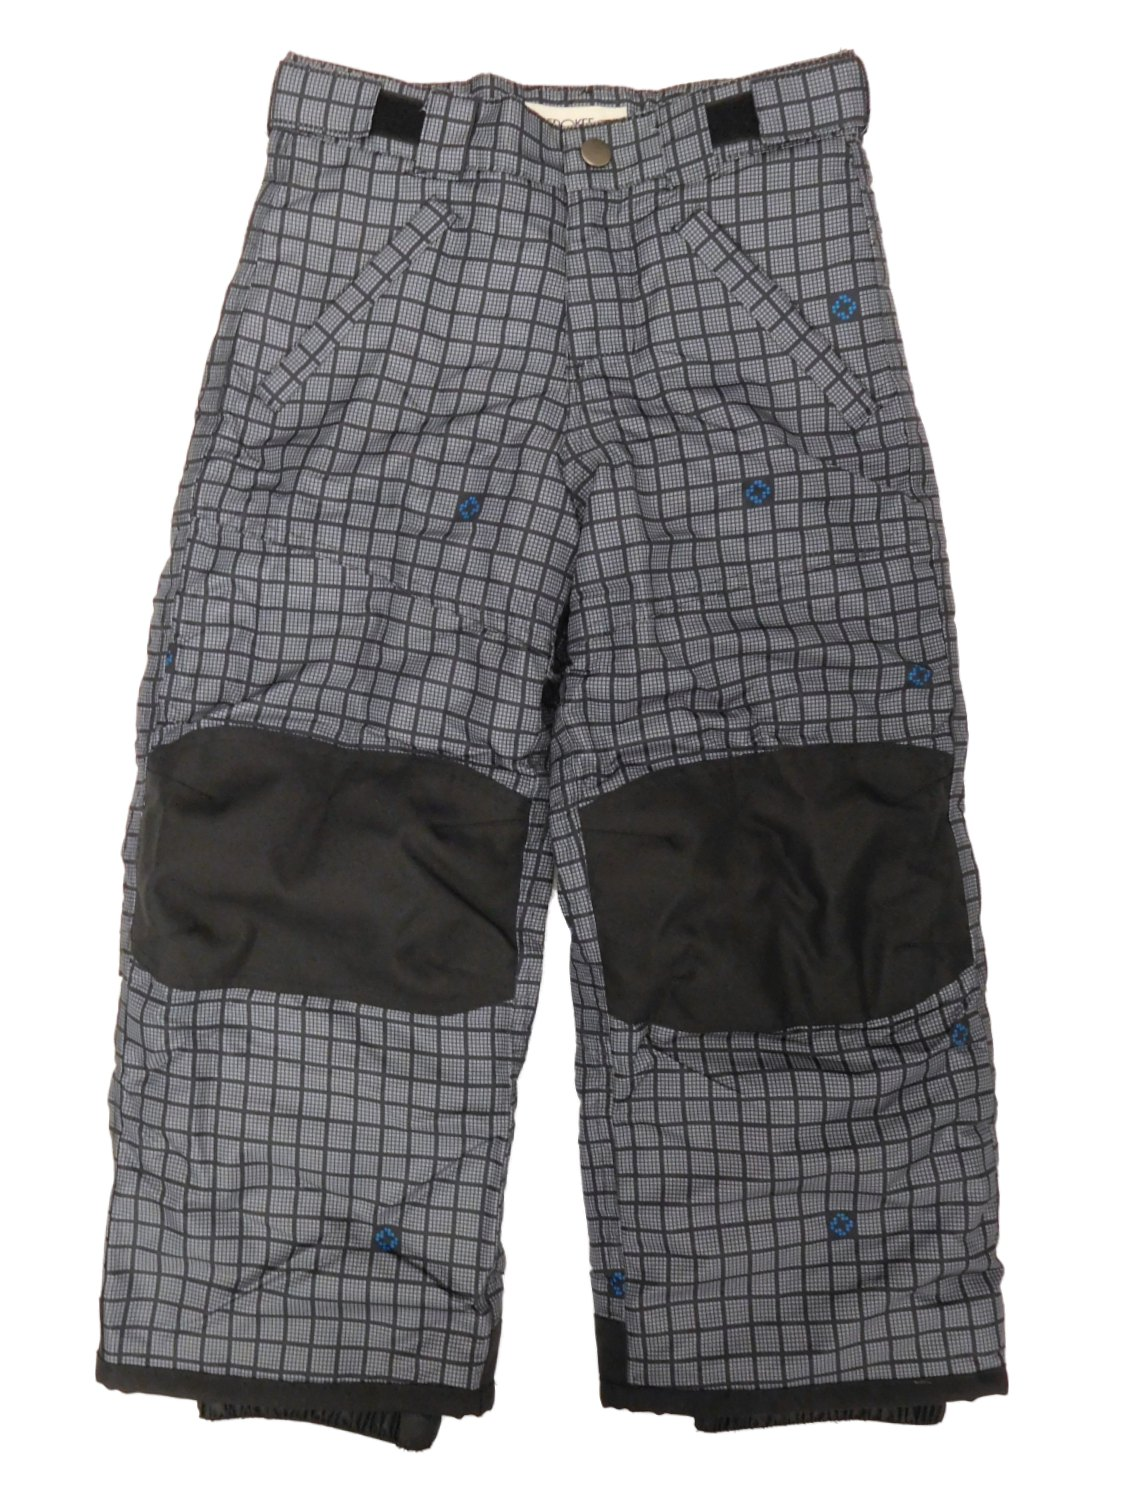 Boys Gray Plaid Water/Wind Resistant Adjustable Waist Reinforced Knee Snow Pants